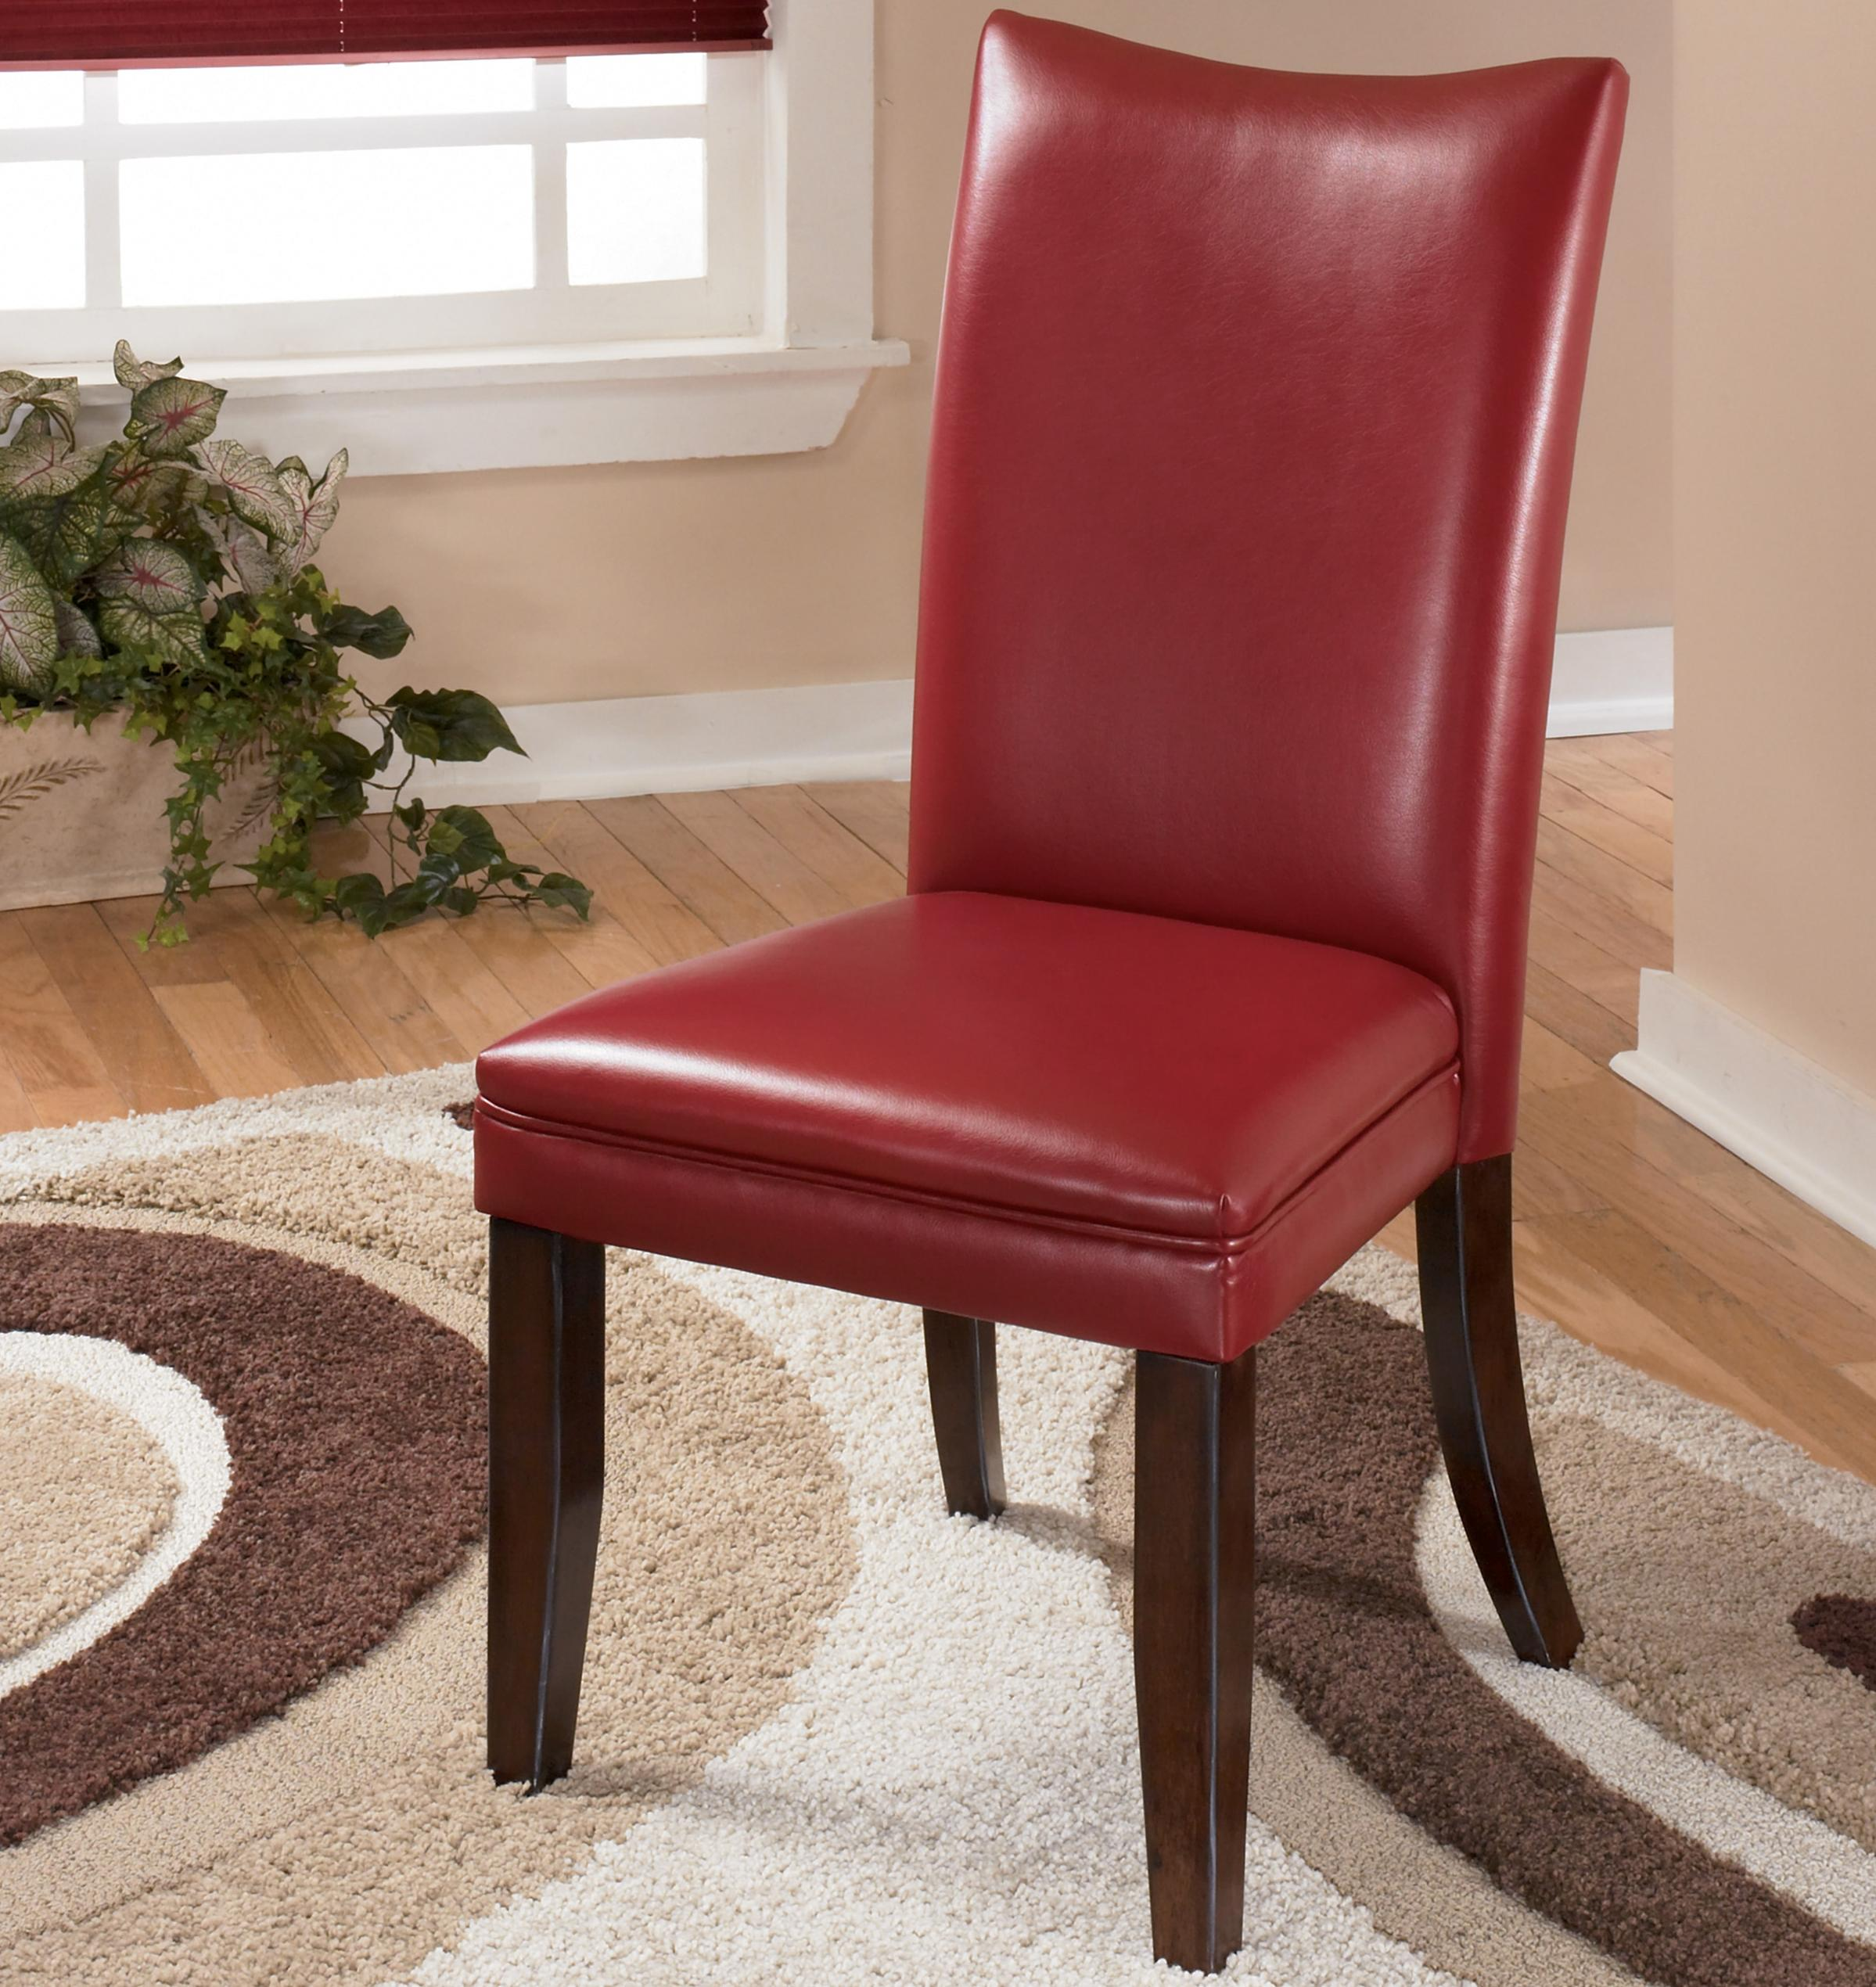 Ashley signature design charrell d357 03 red upholstered for Red upholstered dining chair